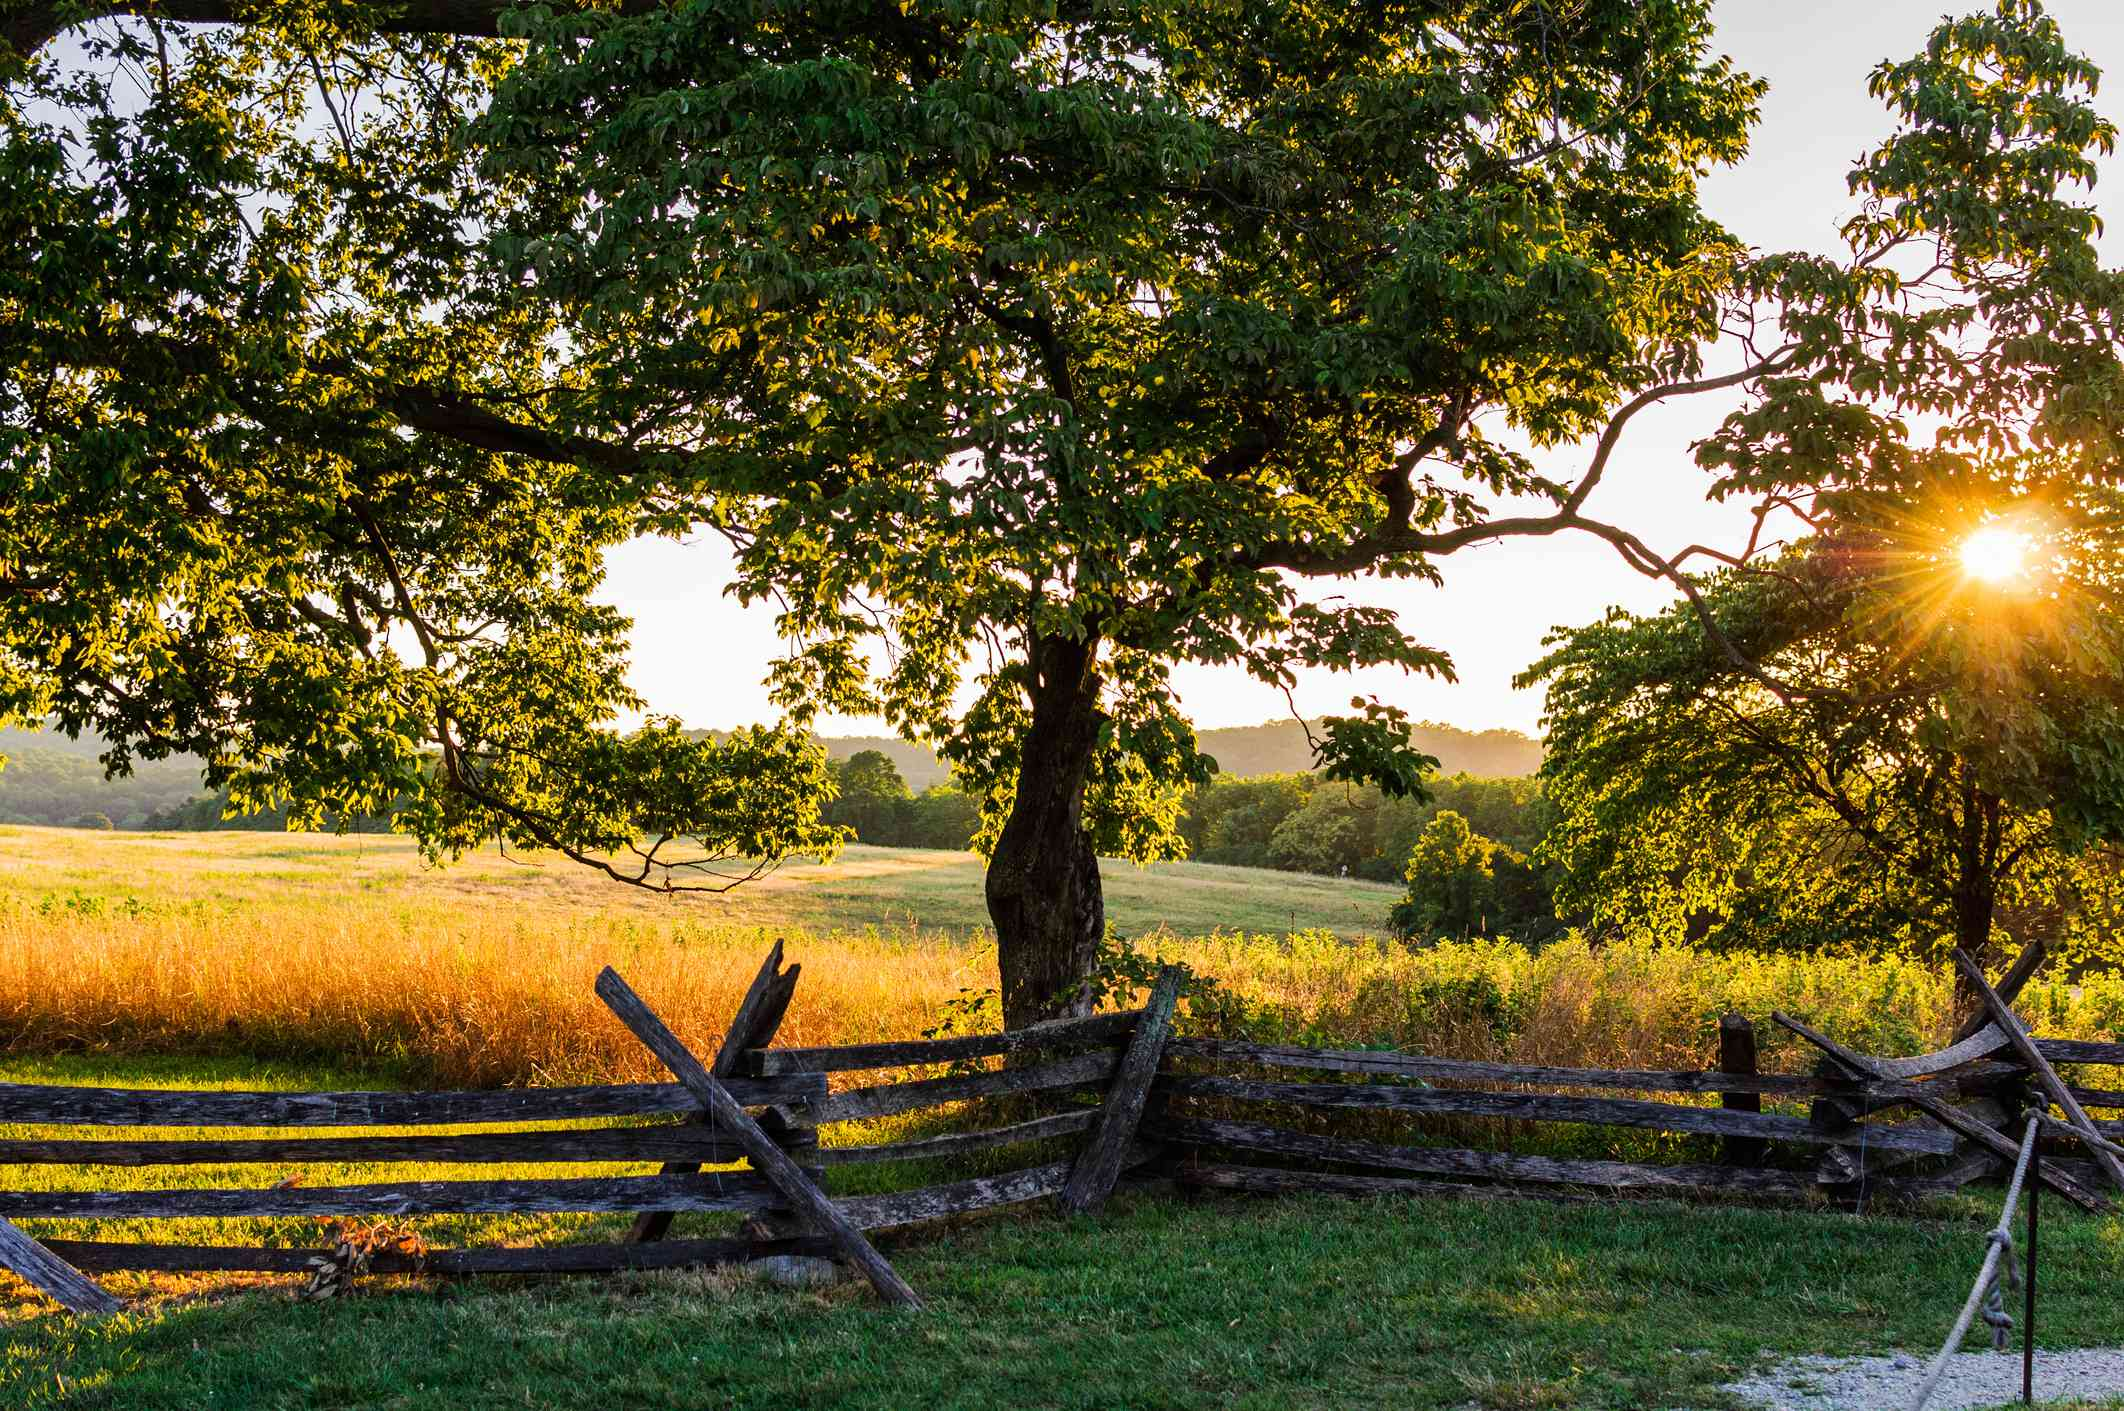 Trees and a field along a fence in Valley Forge, PA